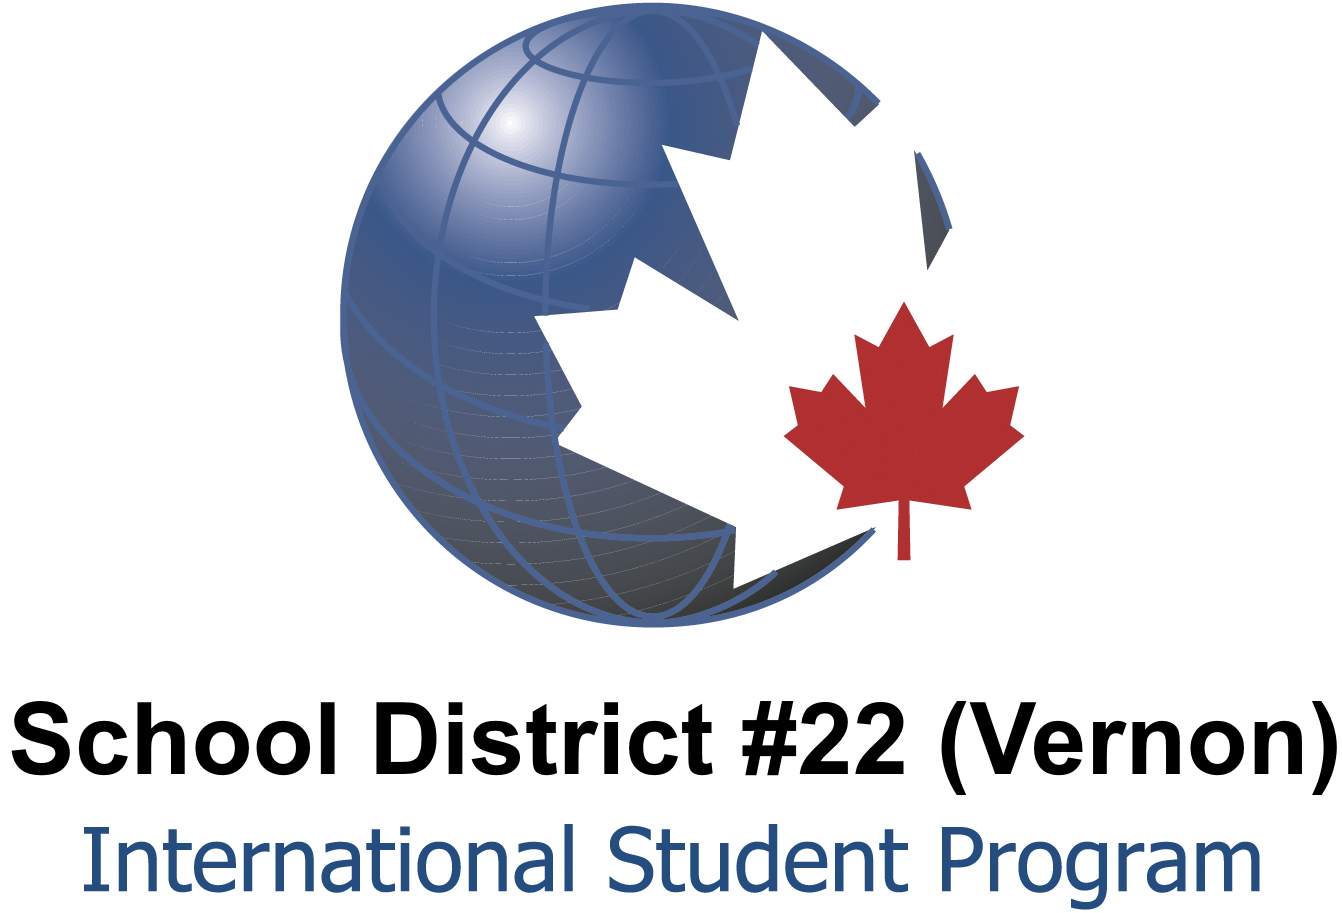 Vernon School District (Vernon, British Columbia)